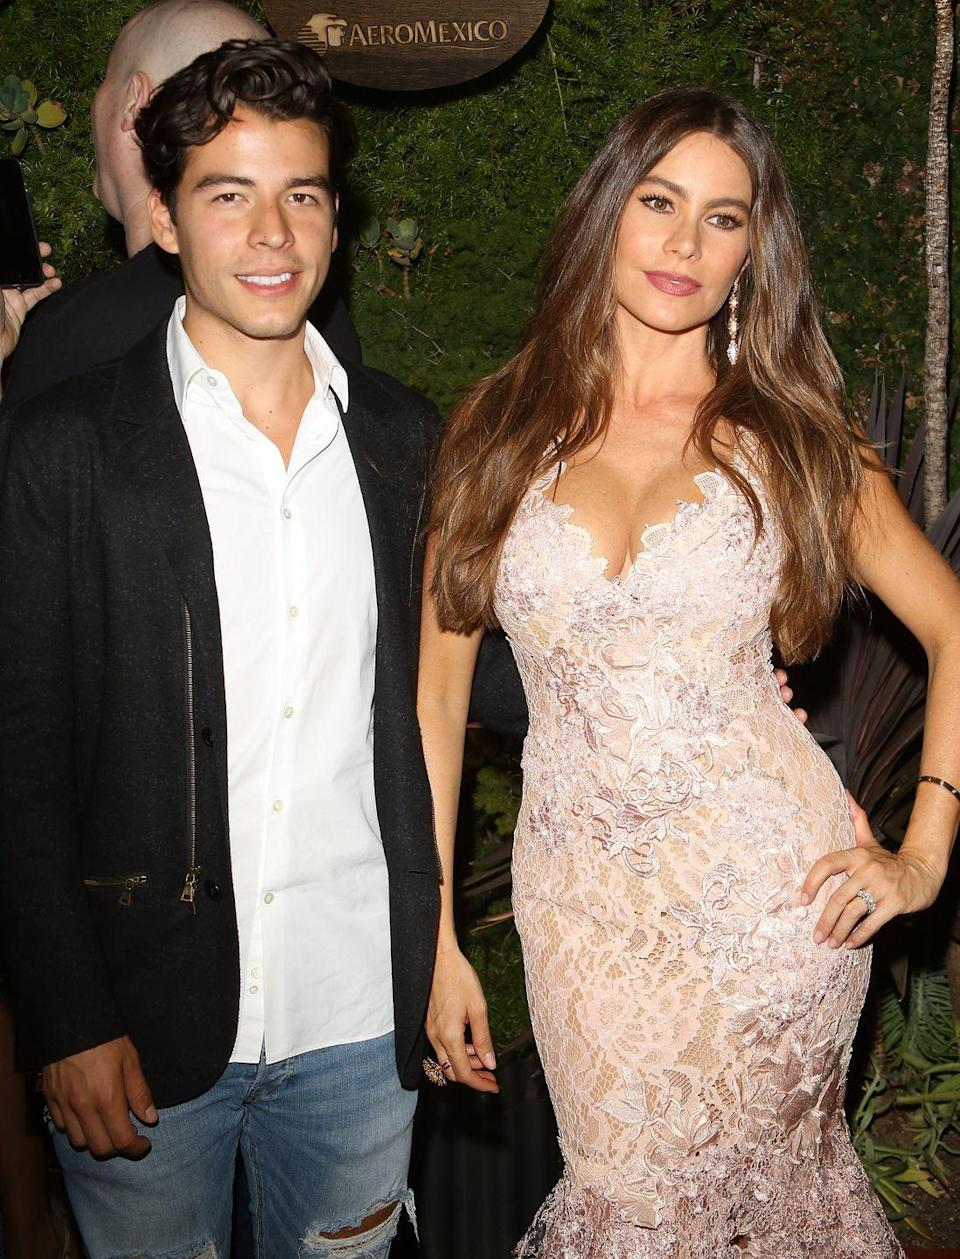 <p>Sofía Vergara gave birth to her son Manolo Gonzalez-Ripoll Vergara in 1992 when she was just 19 years old. She had married her high school sweetheart, Joe Gonzalez, at 18. The two divorced a year after their son was born.</p>